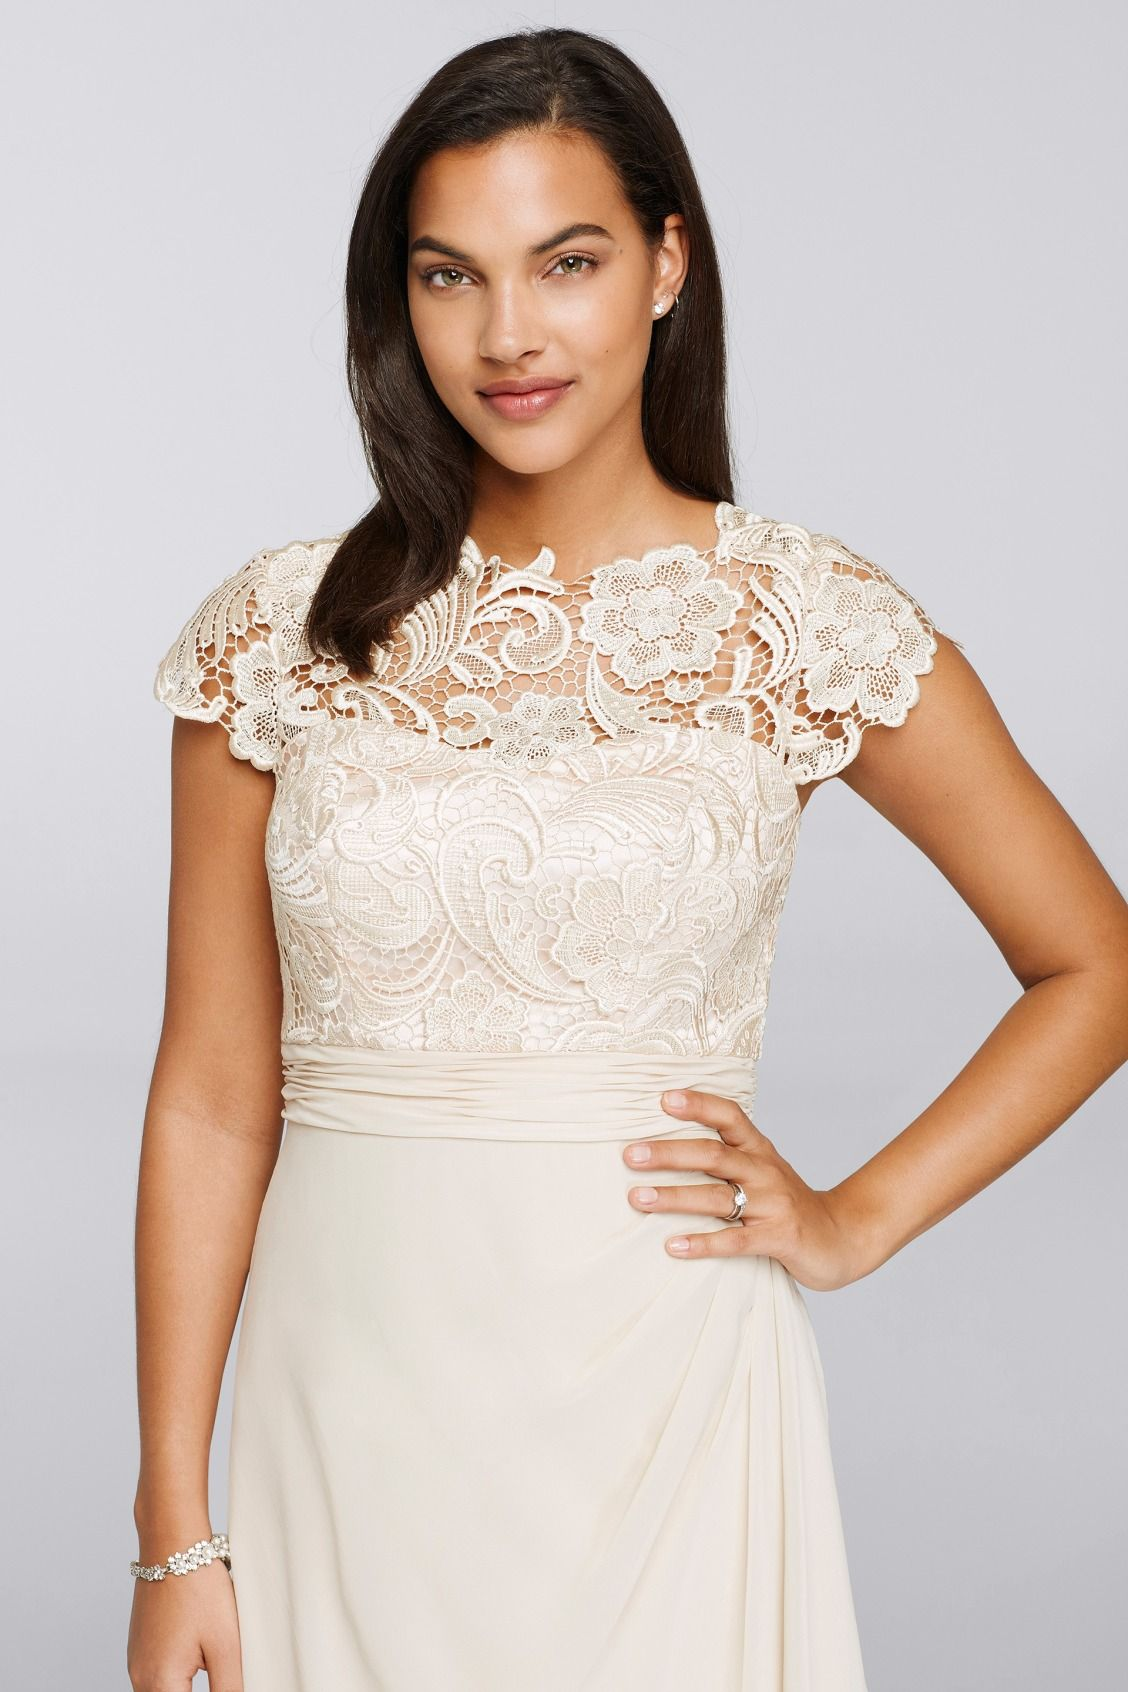 c9b79dd6b41 Lovely lace details on an Ivory Mother of the Bride dress